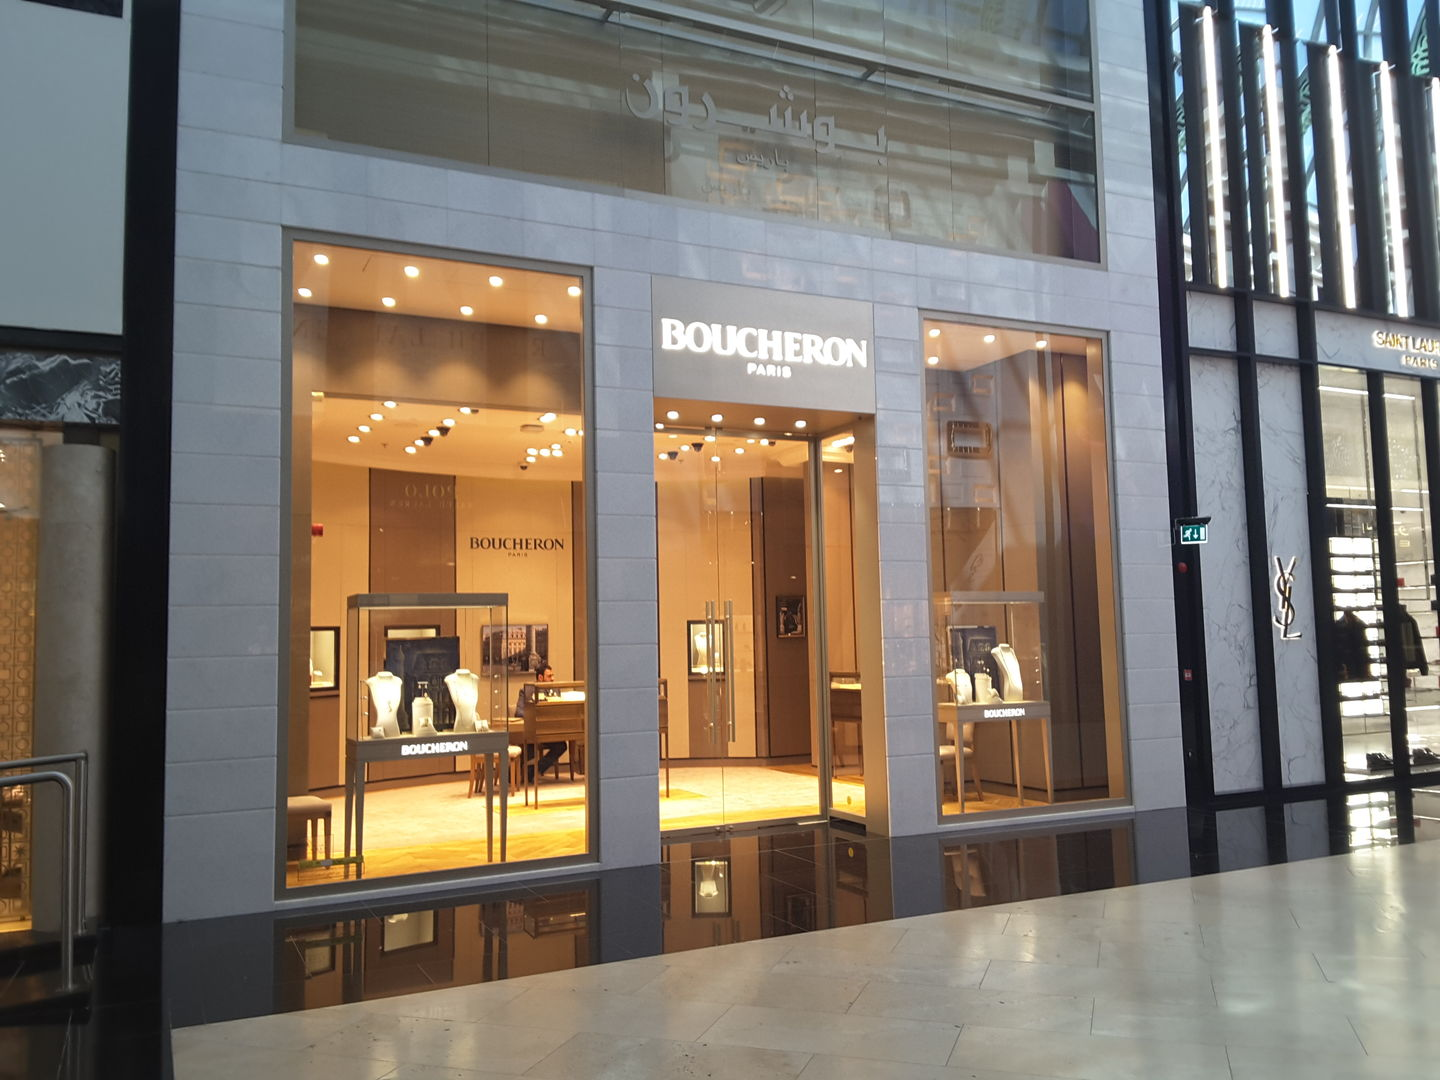 HiDubai-business-boucheron-paris-shopping-jewellery-precious-stones-al-barsha-1-dubai-2